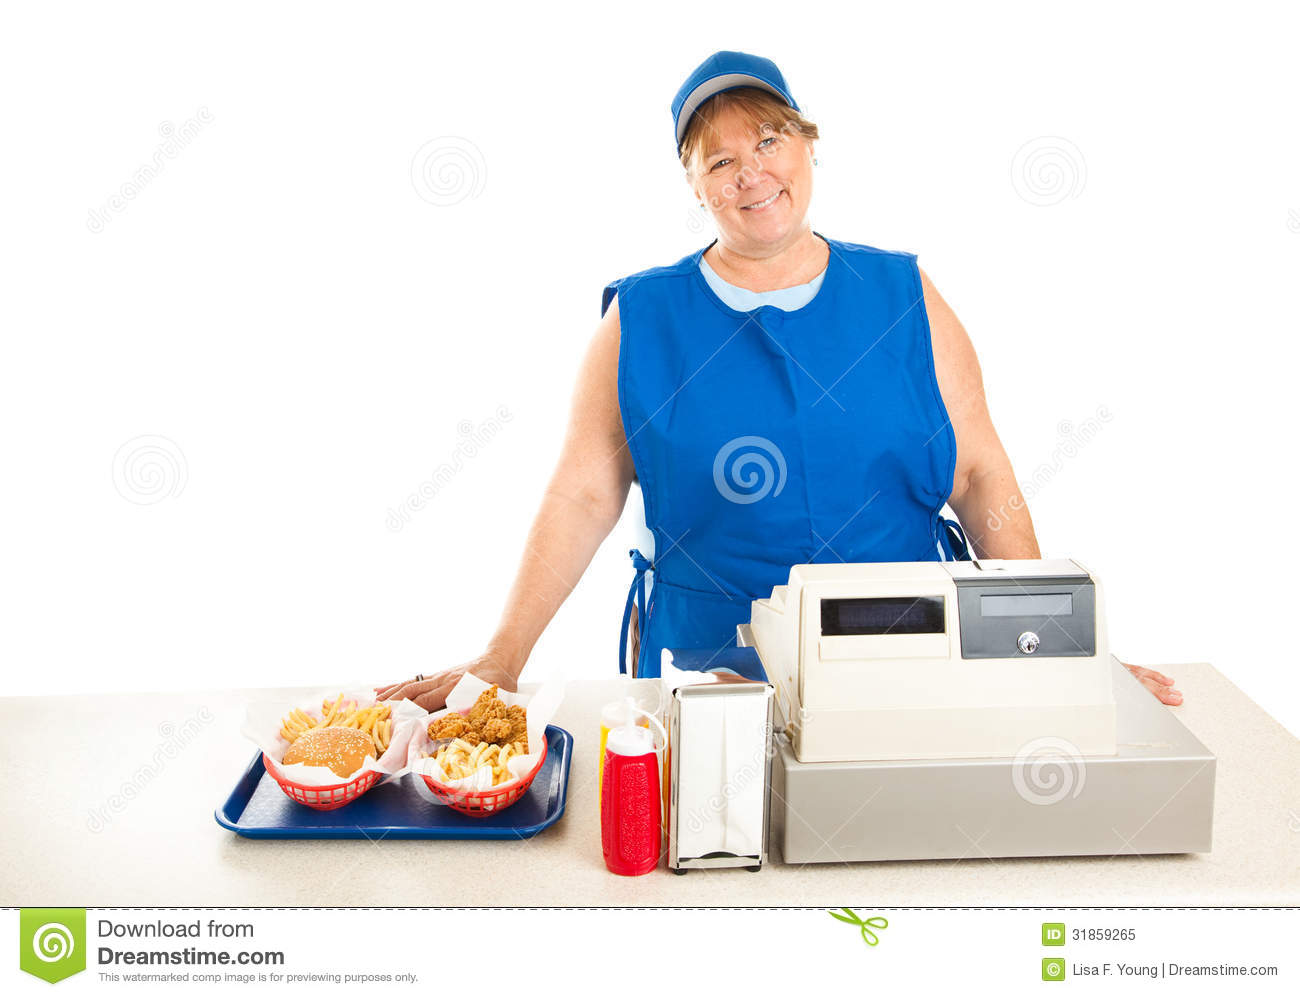 Fast food worker on her knees in the bathroom 2